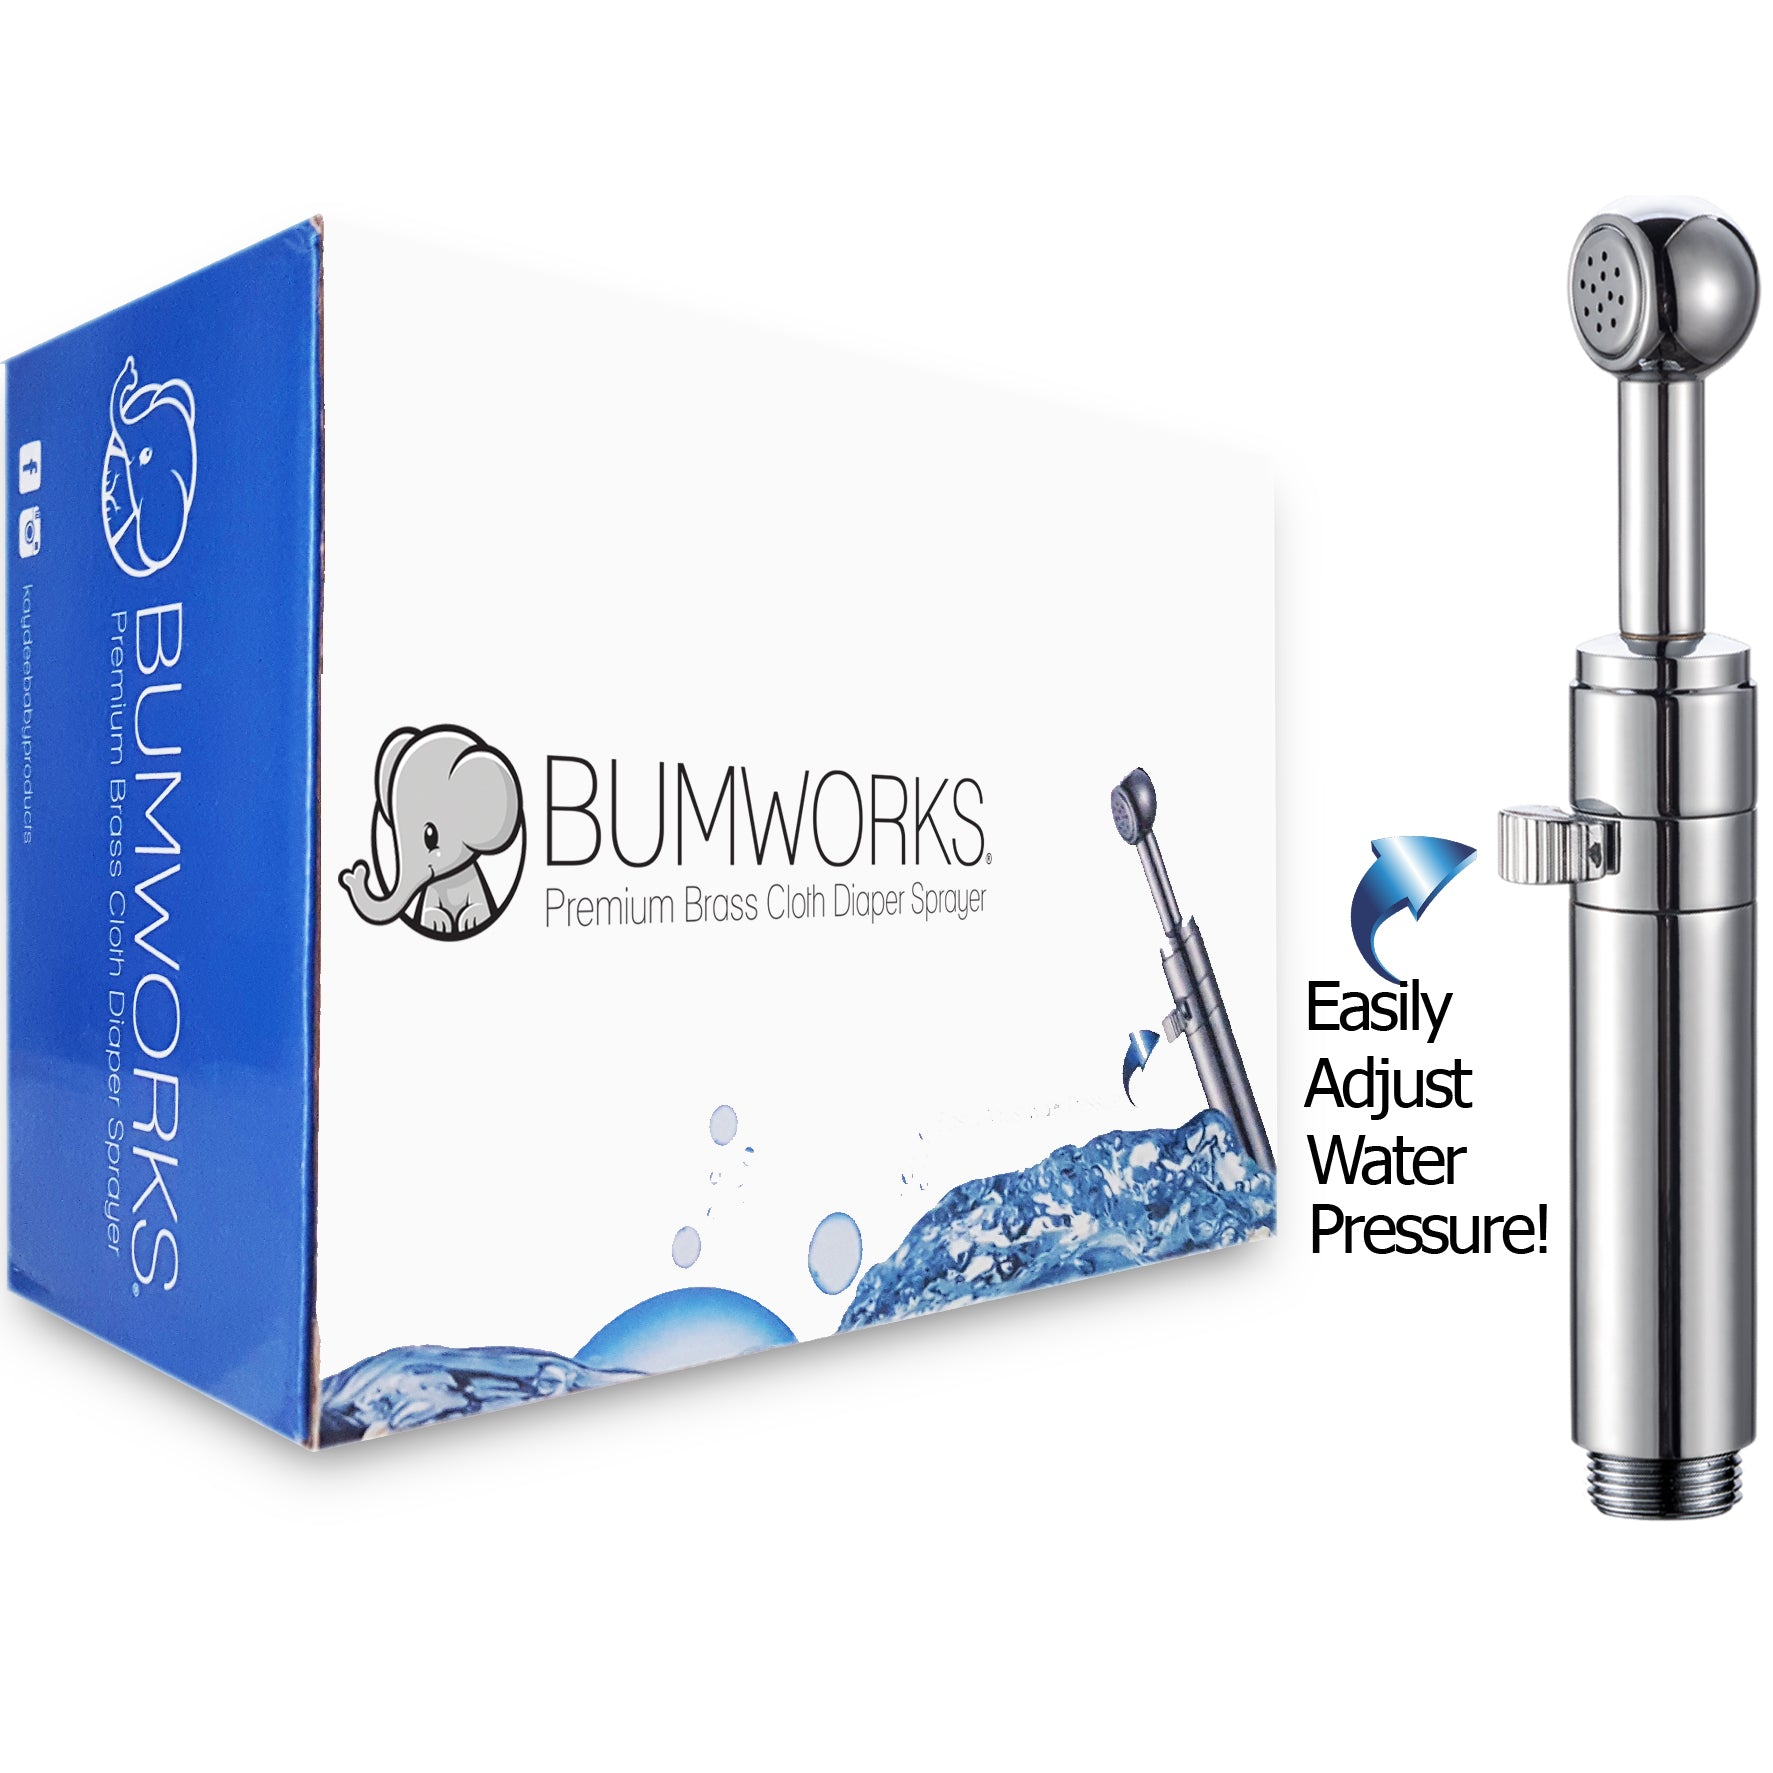 Surprising Bumworks Premium Cloth Diaper Toilet Sprayer Kit Sturdy Brass Chrome Hand Held Bidet With Adjustable Water Pressure Nozzle Metal Hose T Valve And Ibusinesslaw Wood Chair Design Ideas Ibusinesslaworg